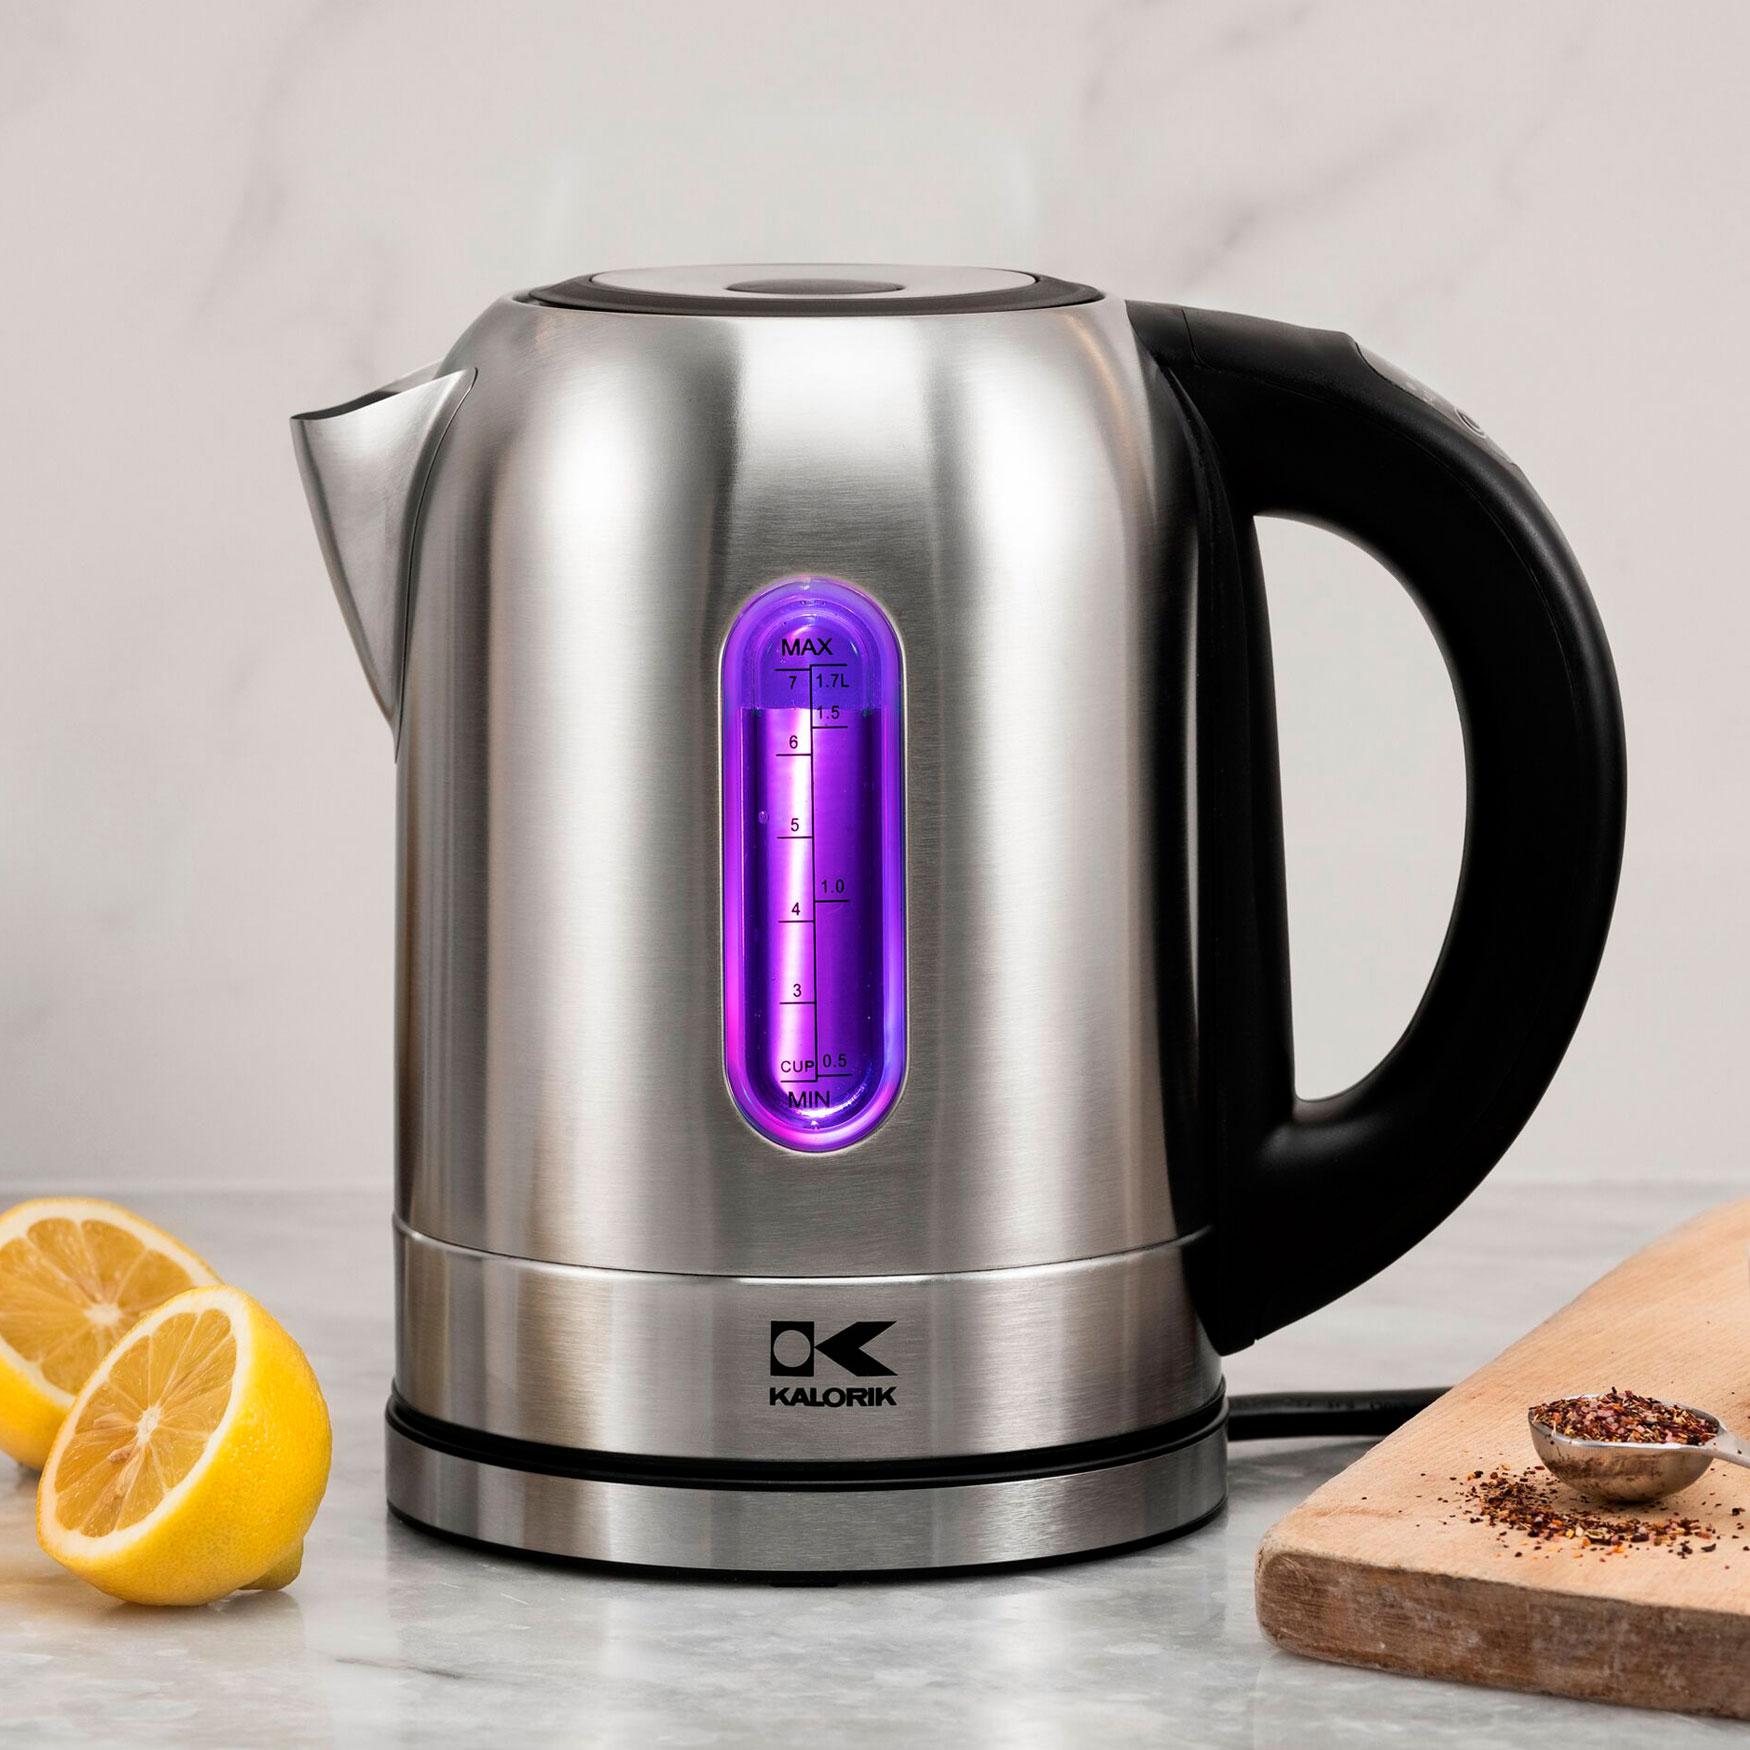 Kalorik Stainless Steel Digital Kettle, STAINLESS